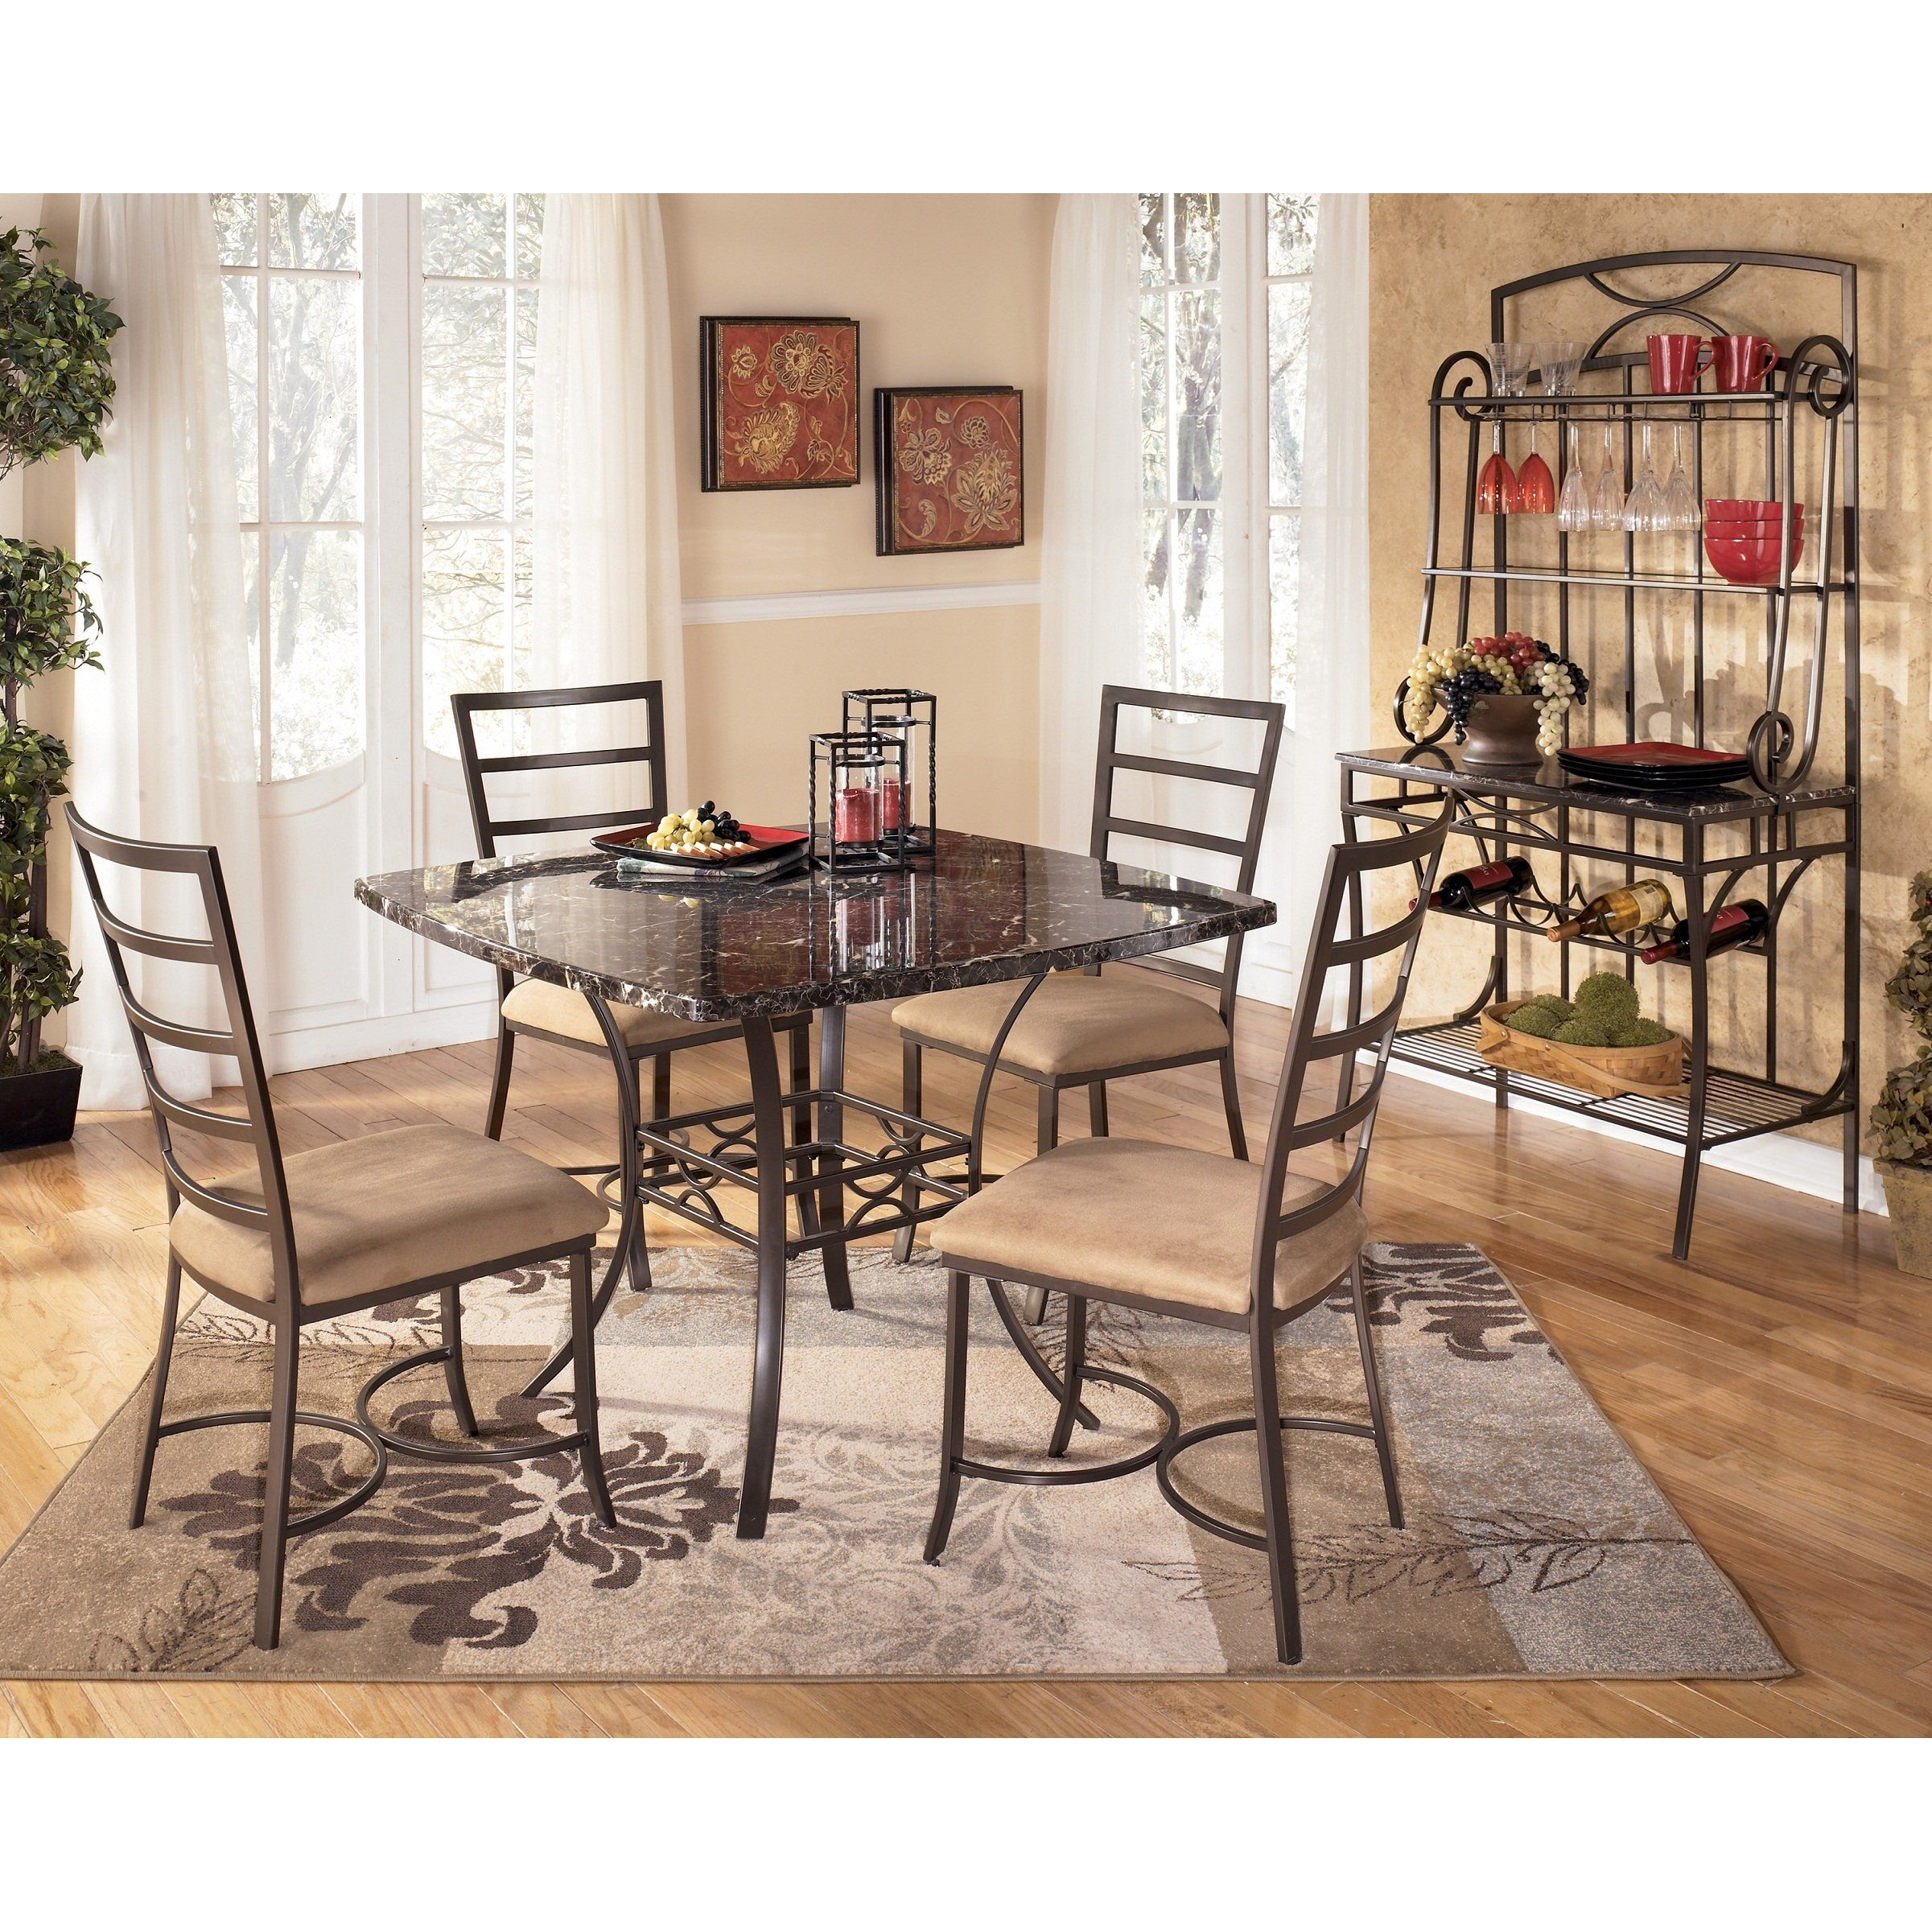 5 PC Faux Marble and Metal Dining Room Set - Table top made with faux marble with a durable p ...